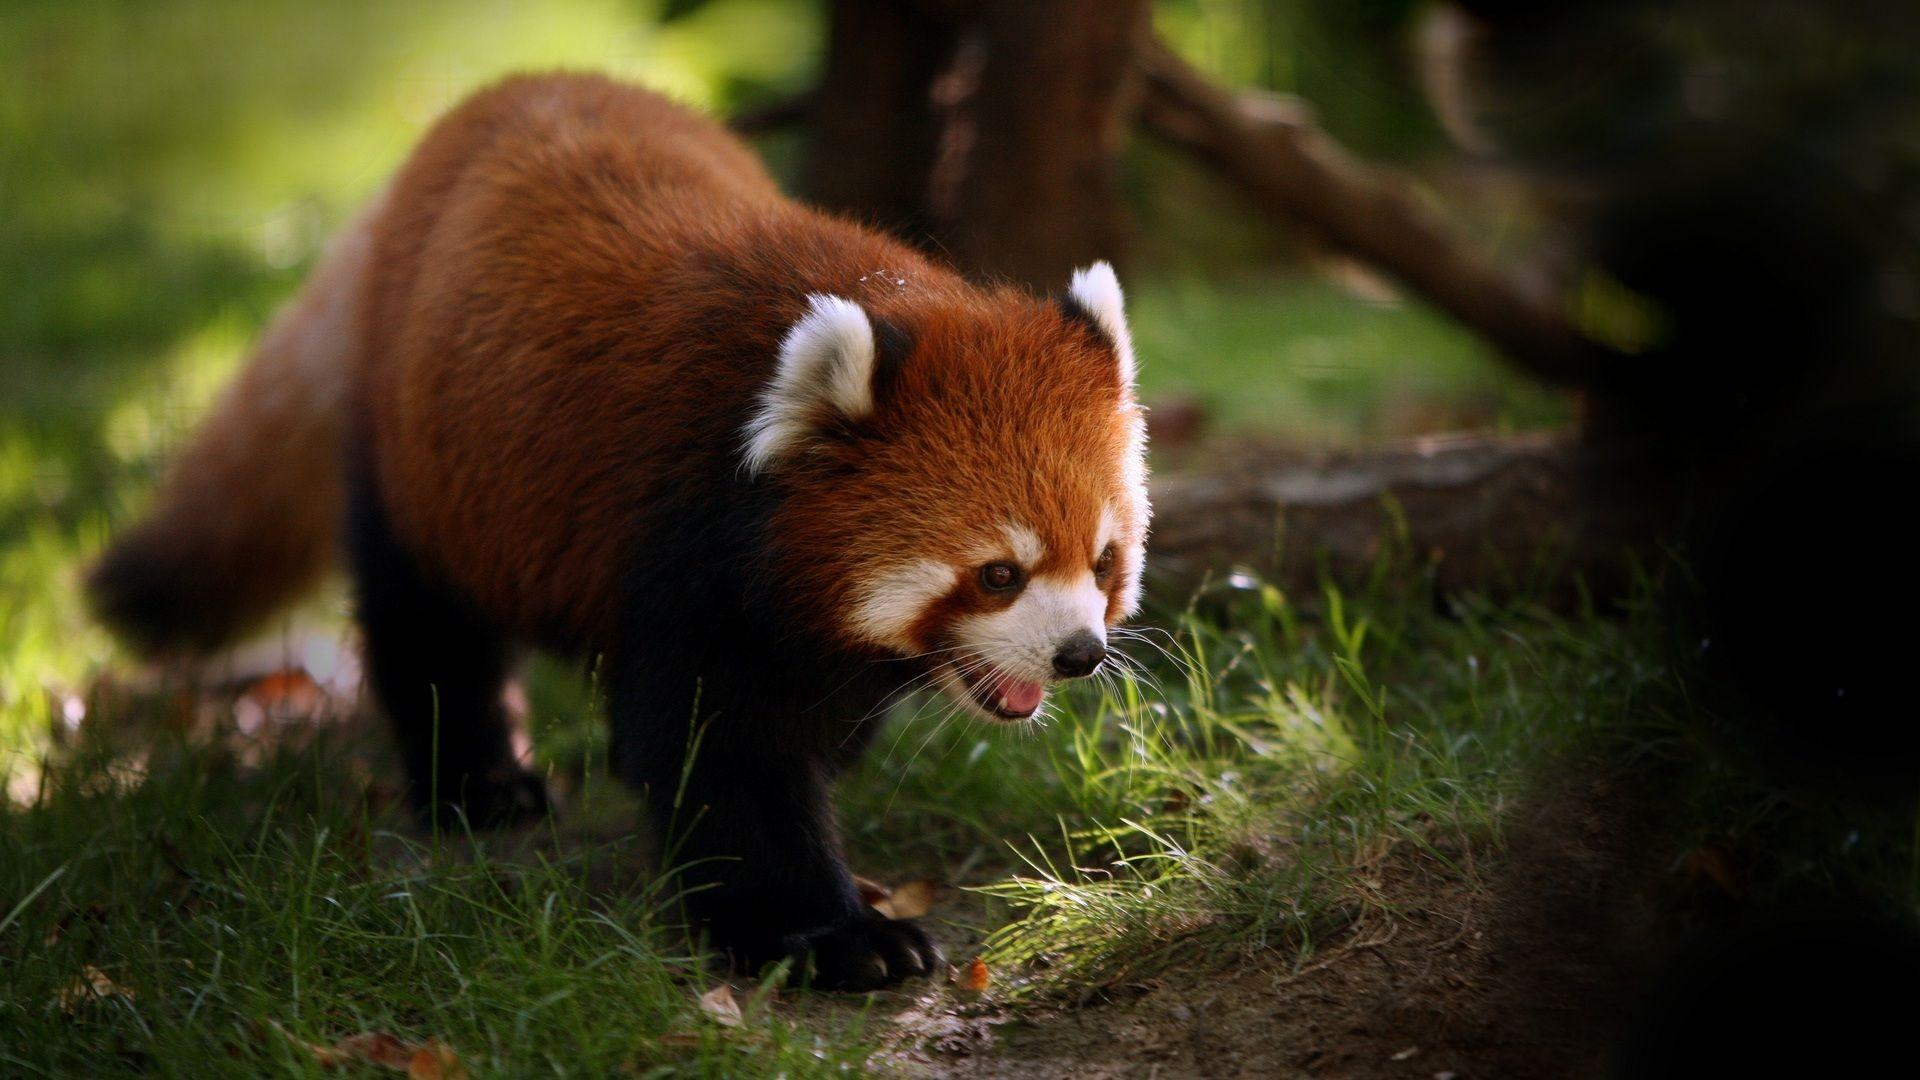 Daily Wallpaper: Red Panda | I Like To Waste My Time